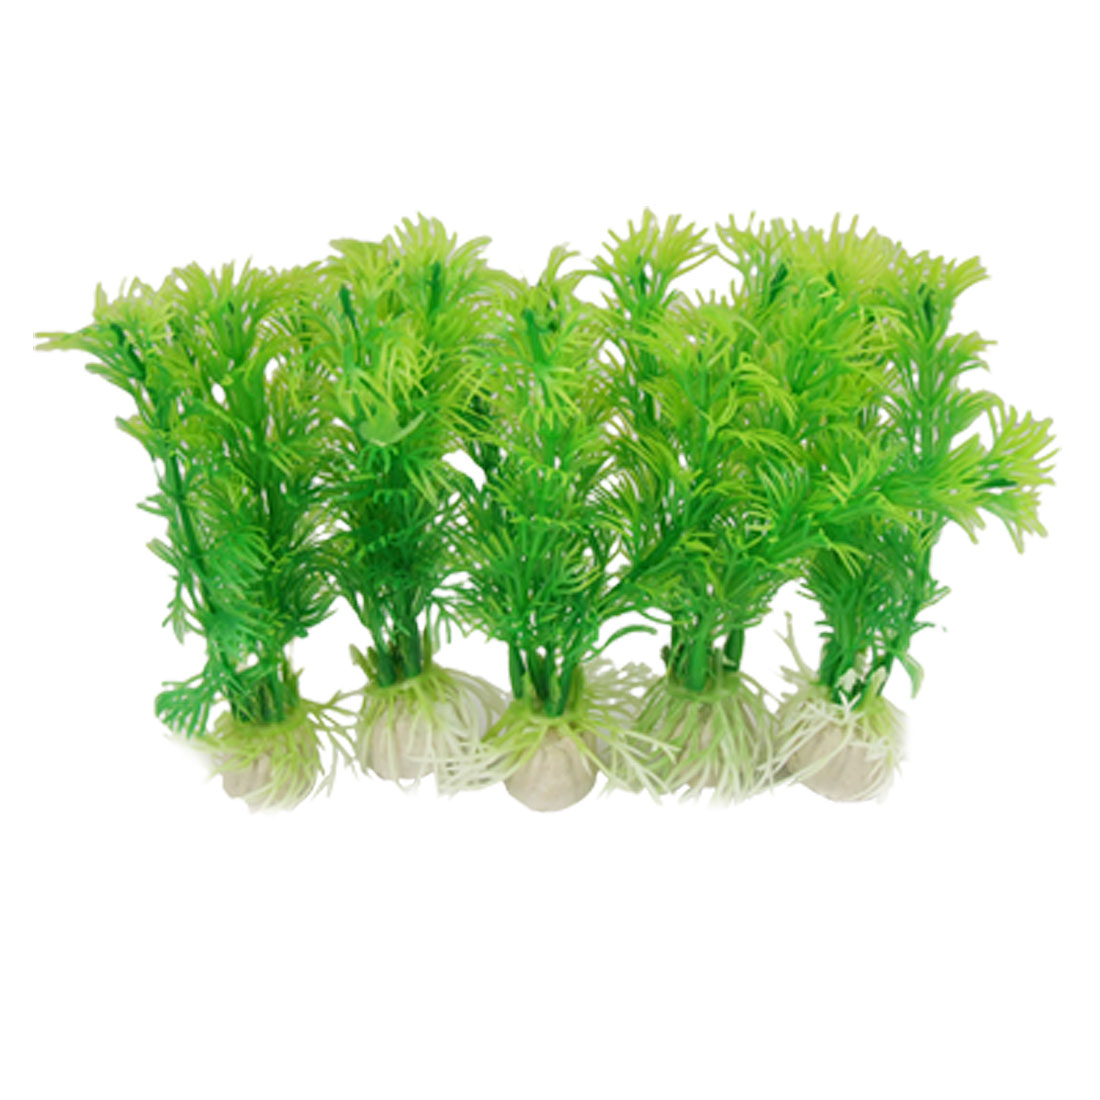 5 Pcs Green Plastic Emulational Plant Ornament for Fish Tank